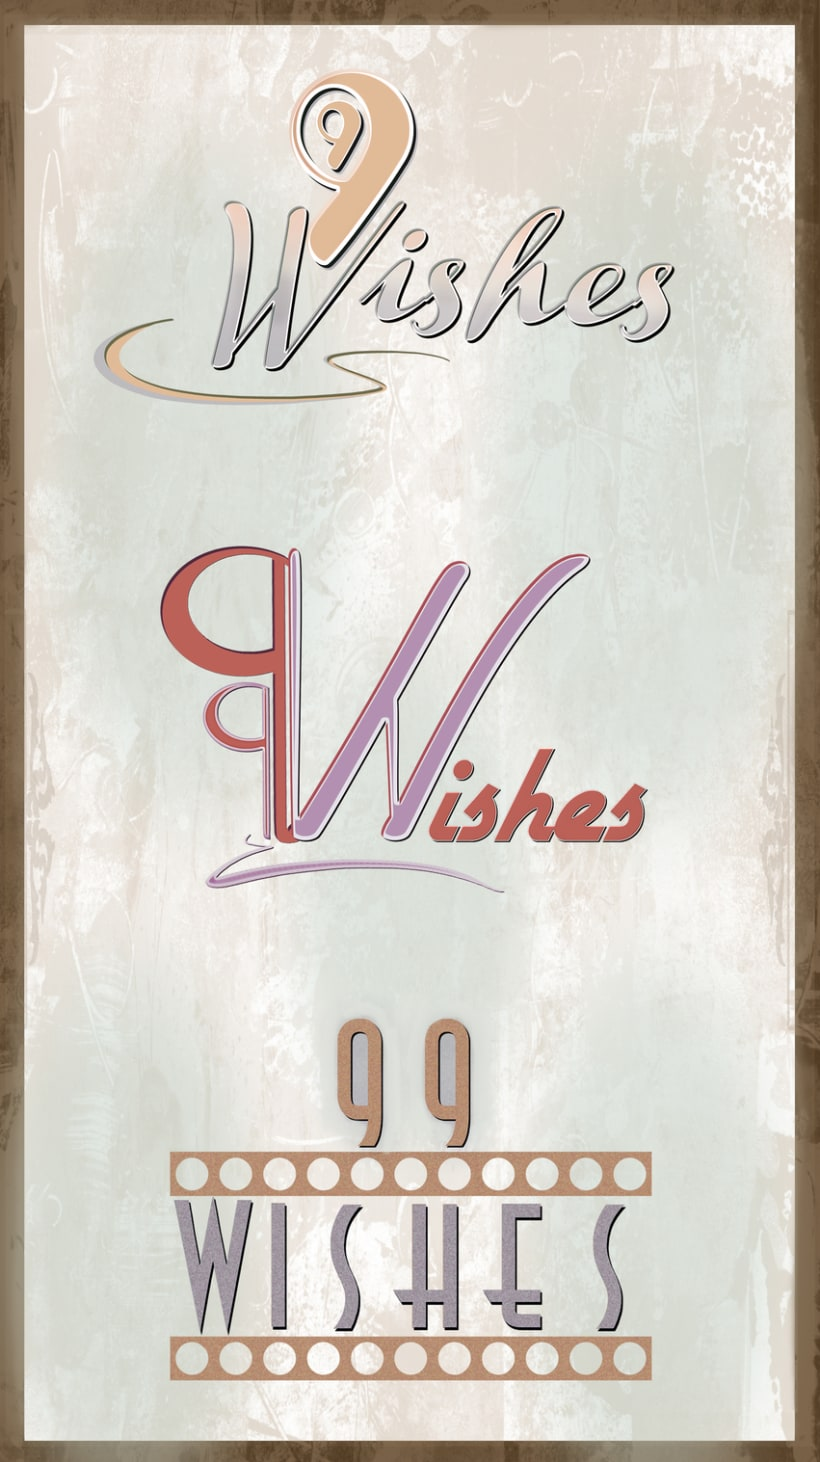 99 Wishes - Logo Designs 0